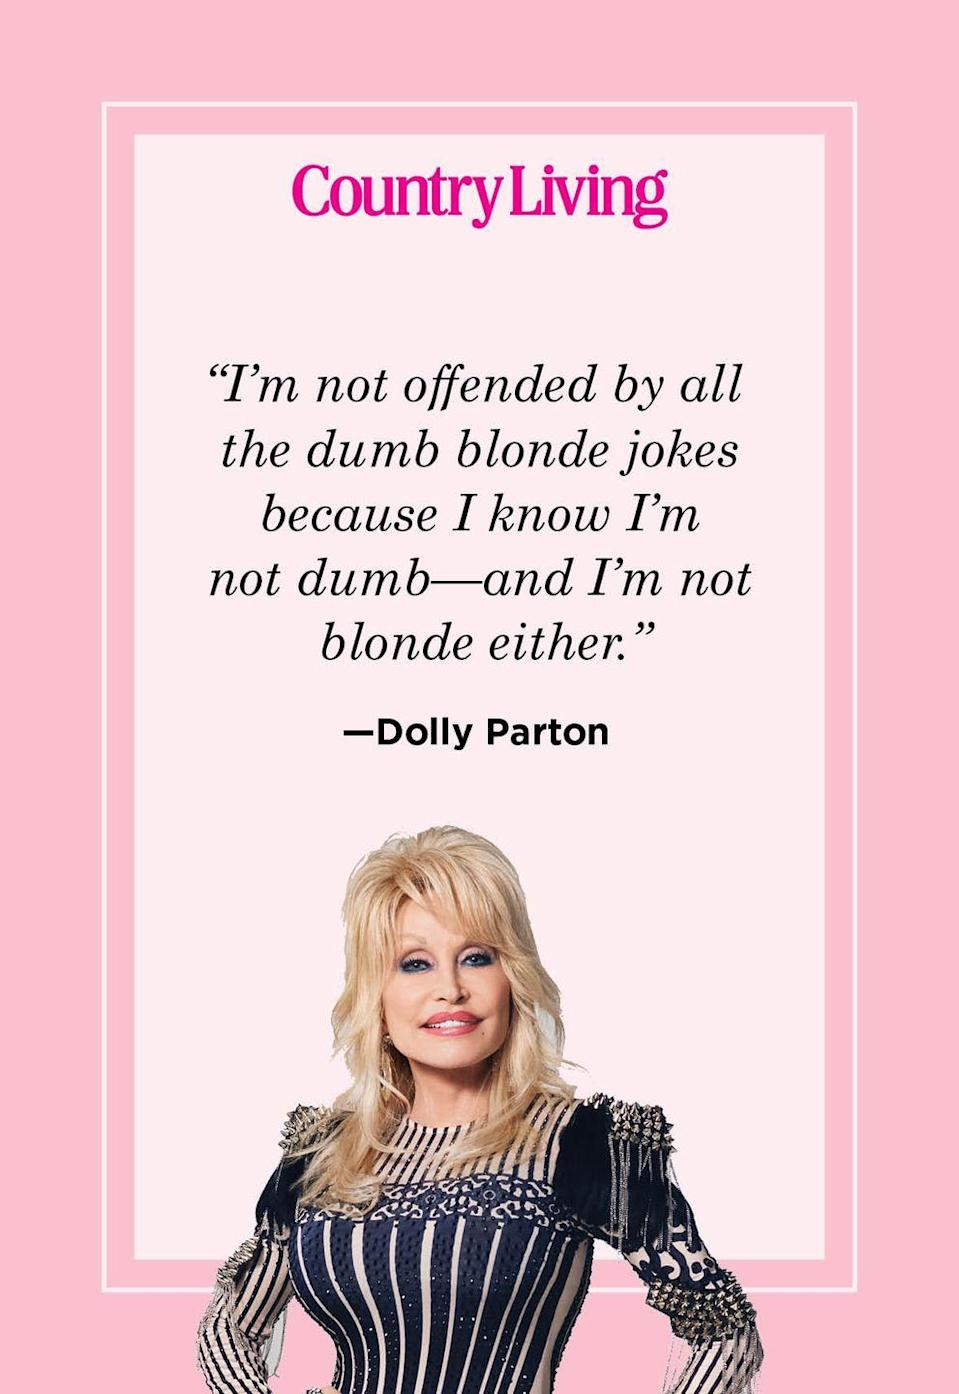 "<p>""I'm not offended by all the dumb blonde jokes because I know I'm not dumb—and I'm not blonde either.""</p>"